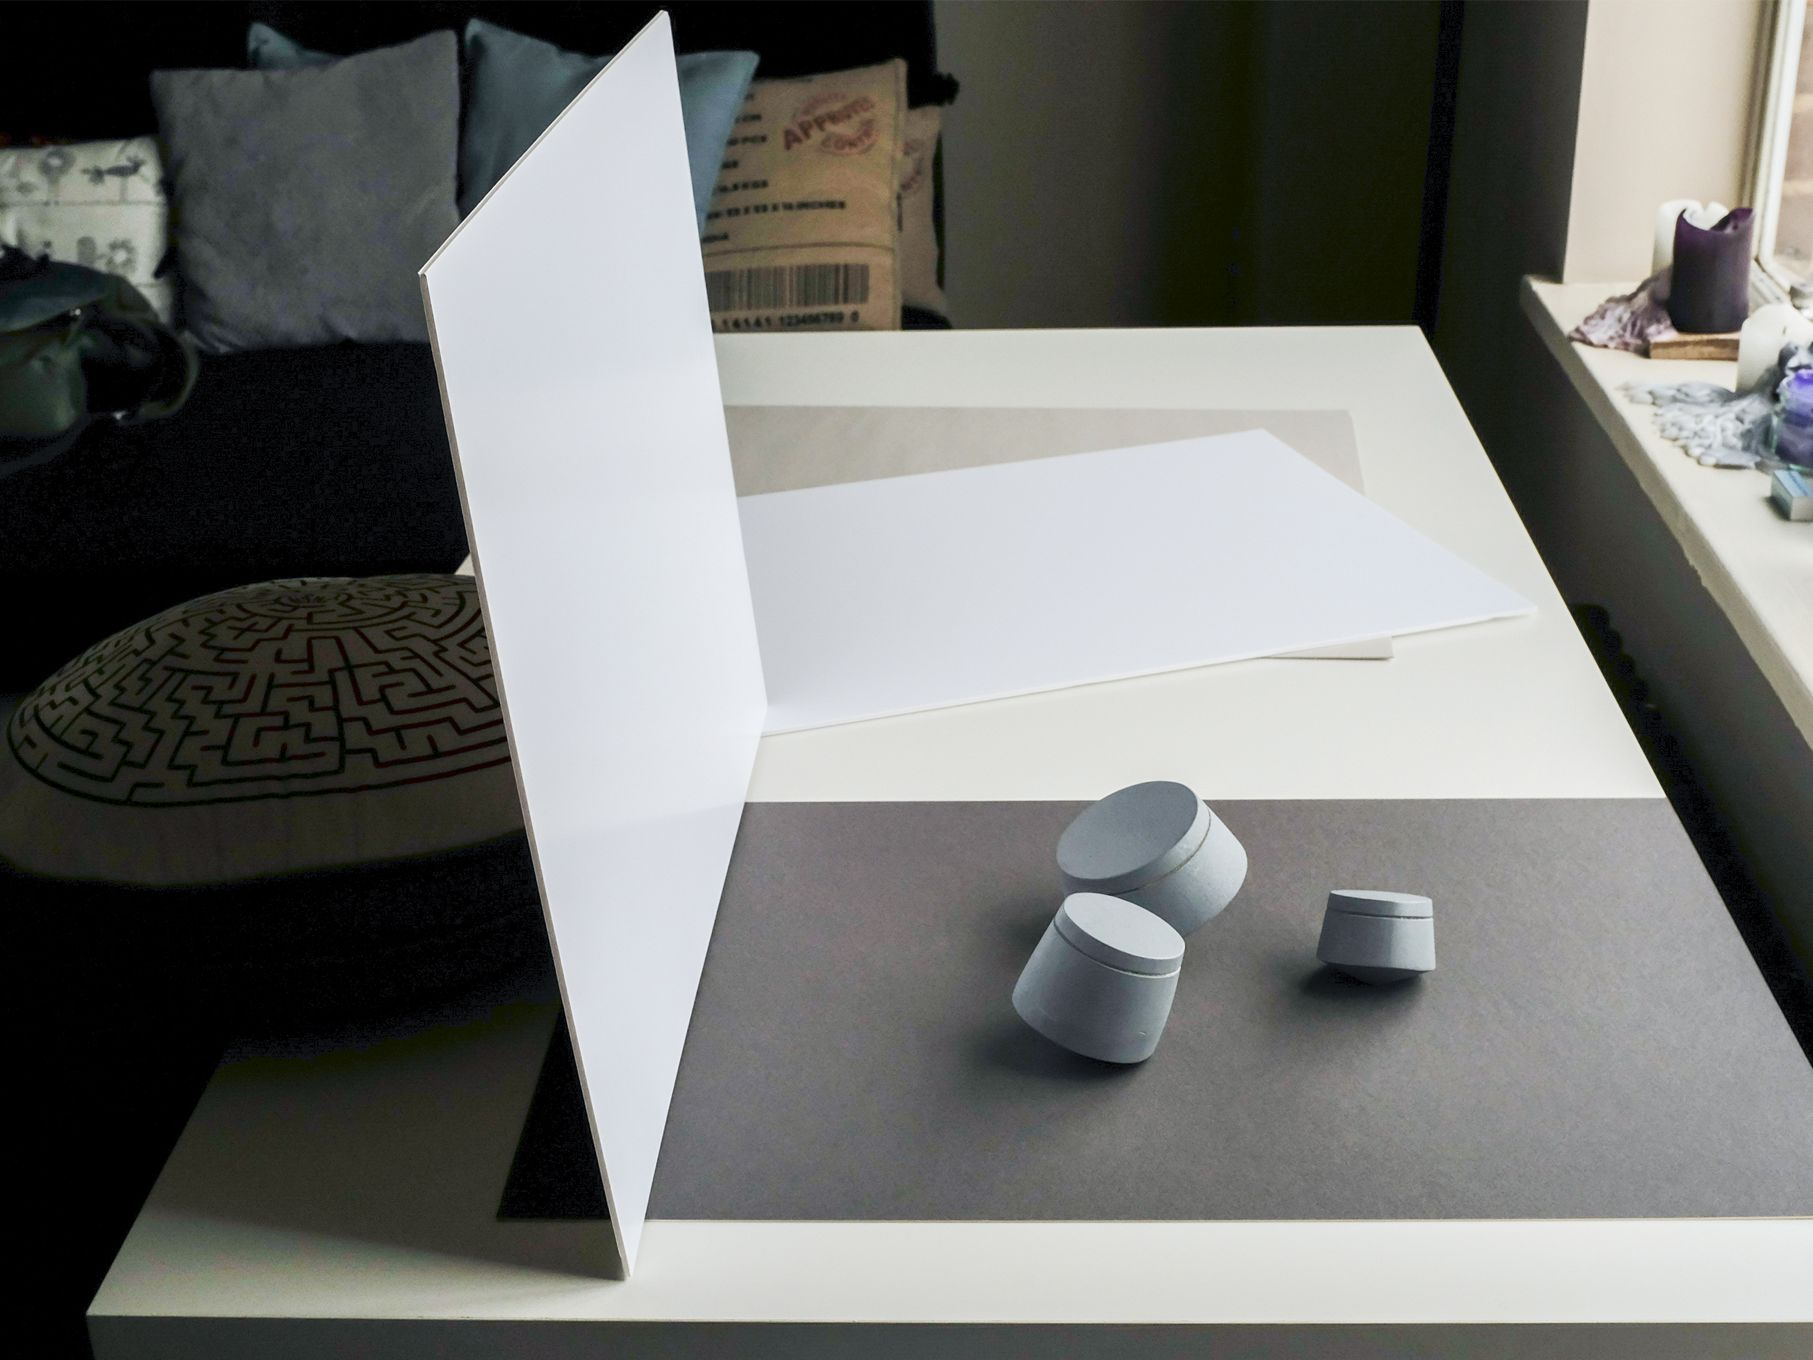 a miniature photography studio with 3 small blue objects prepared for photographing